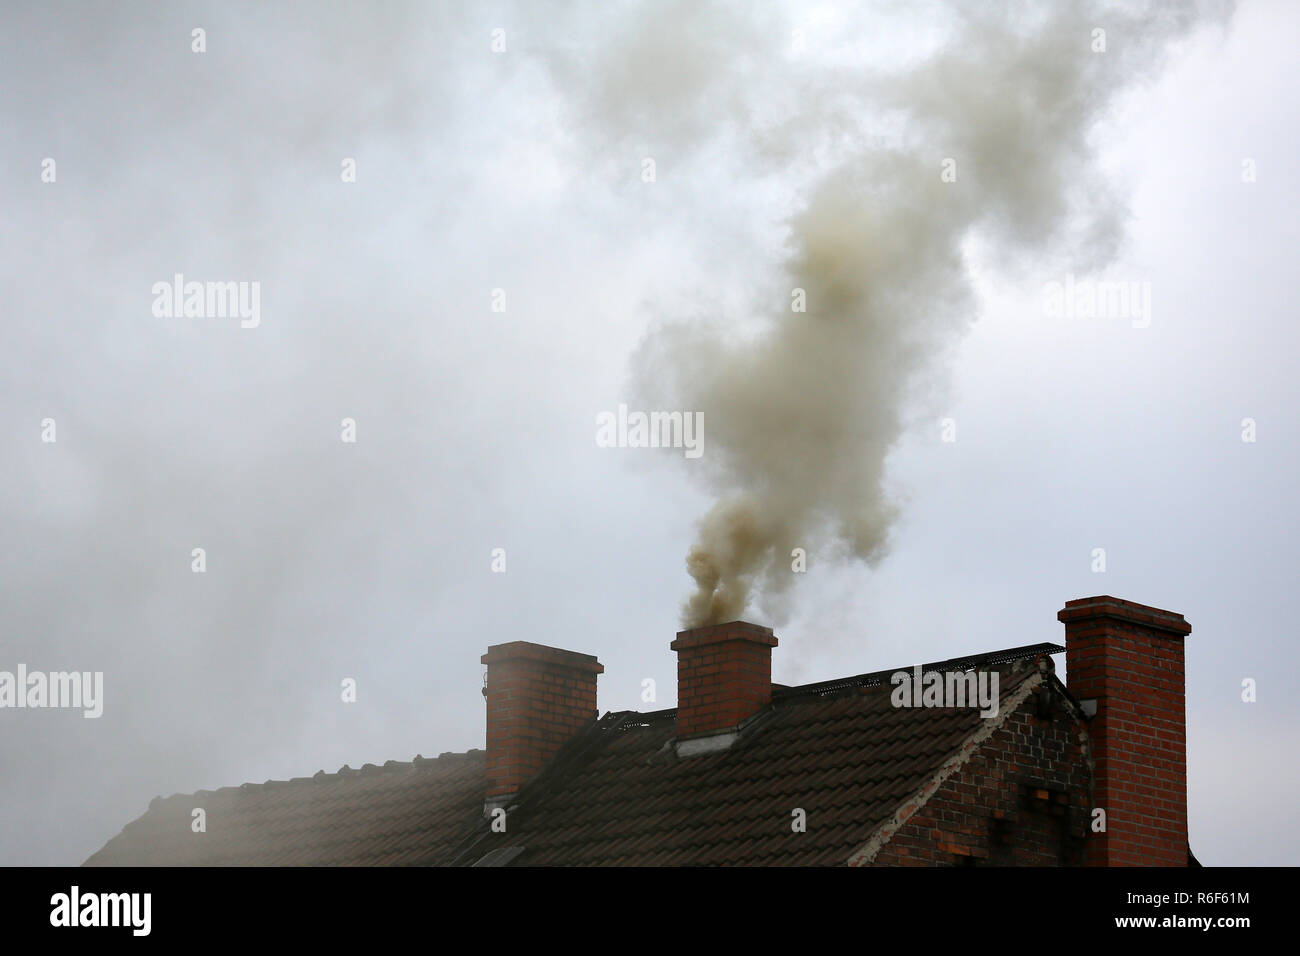 Smoke from the chimney of a house fueled with coal Stock Photo